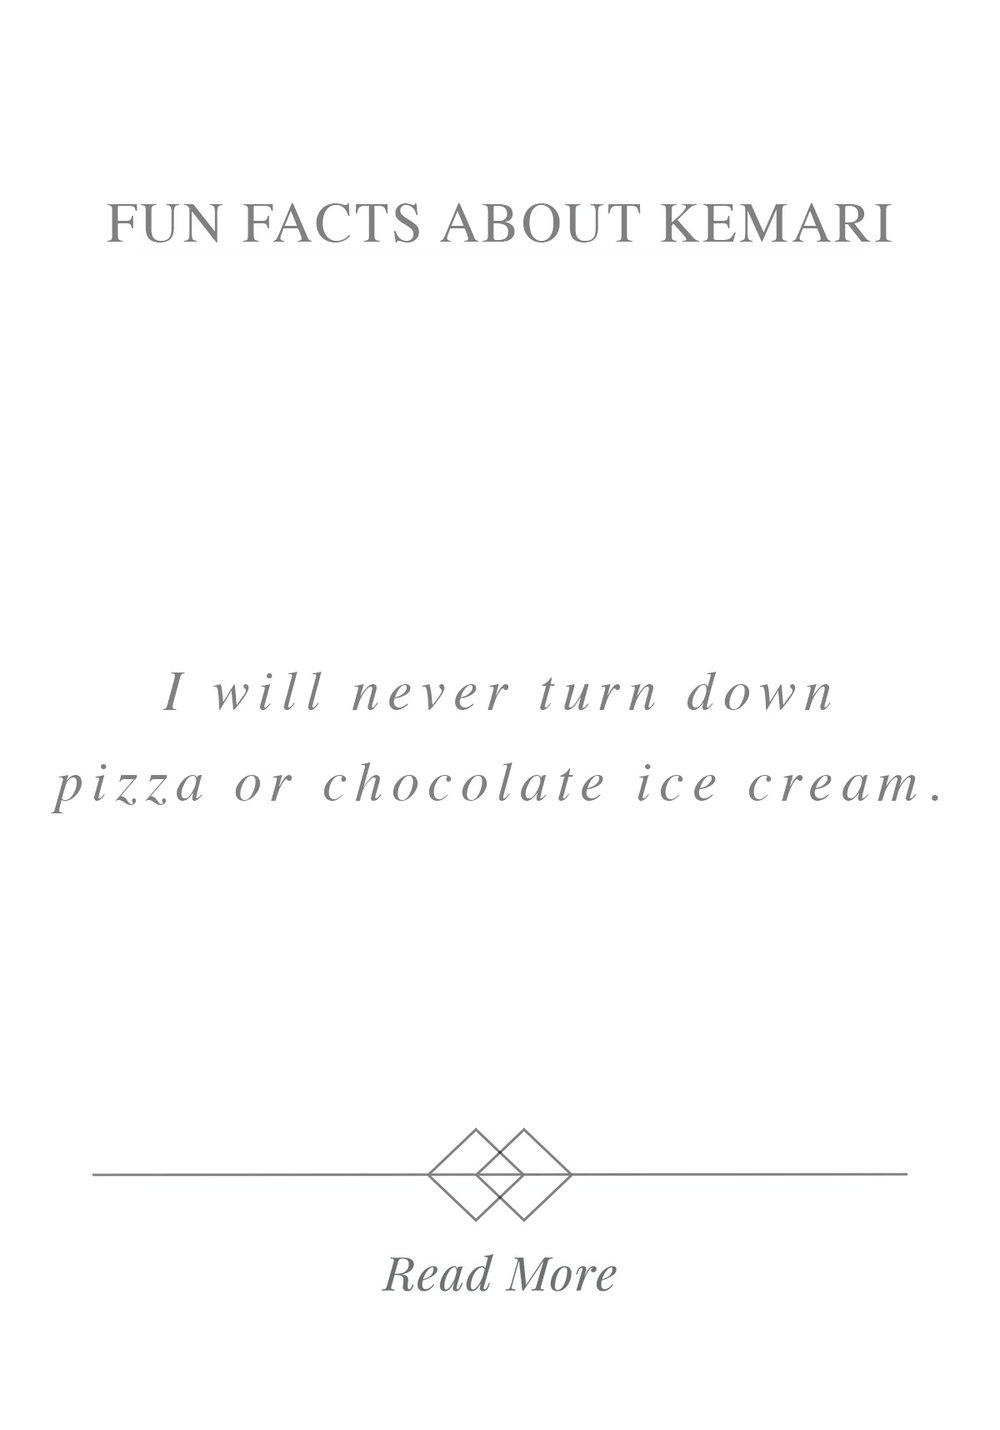 fun facts kemari6.jpg